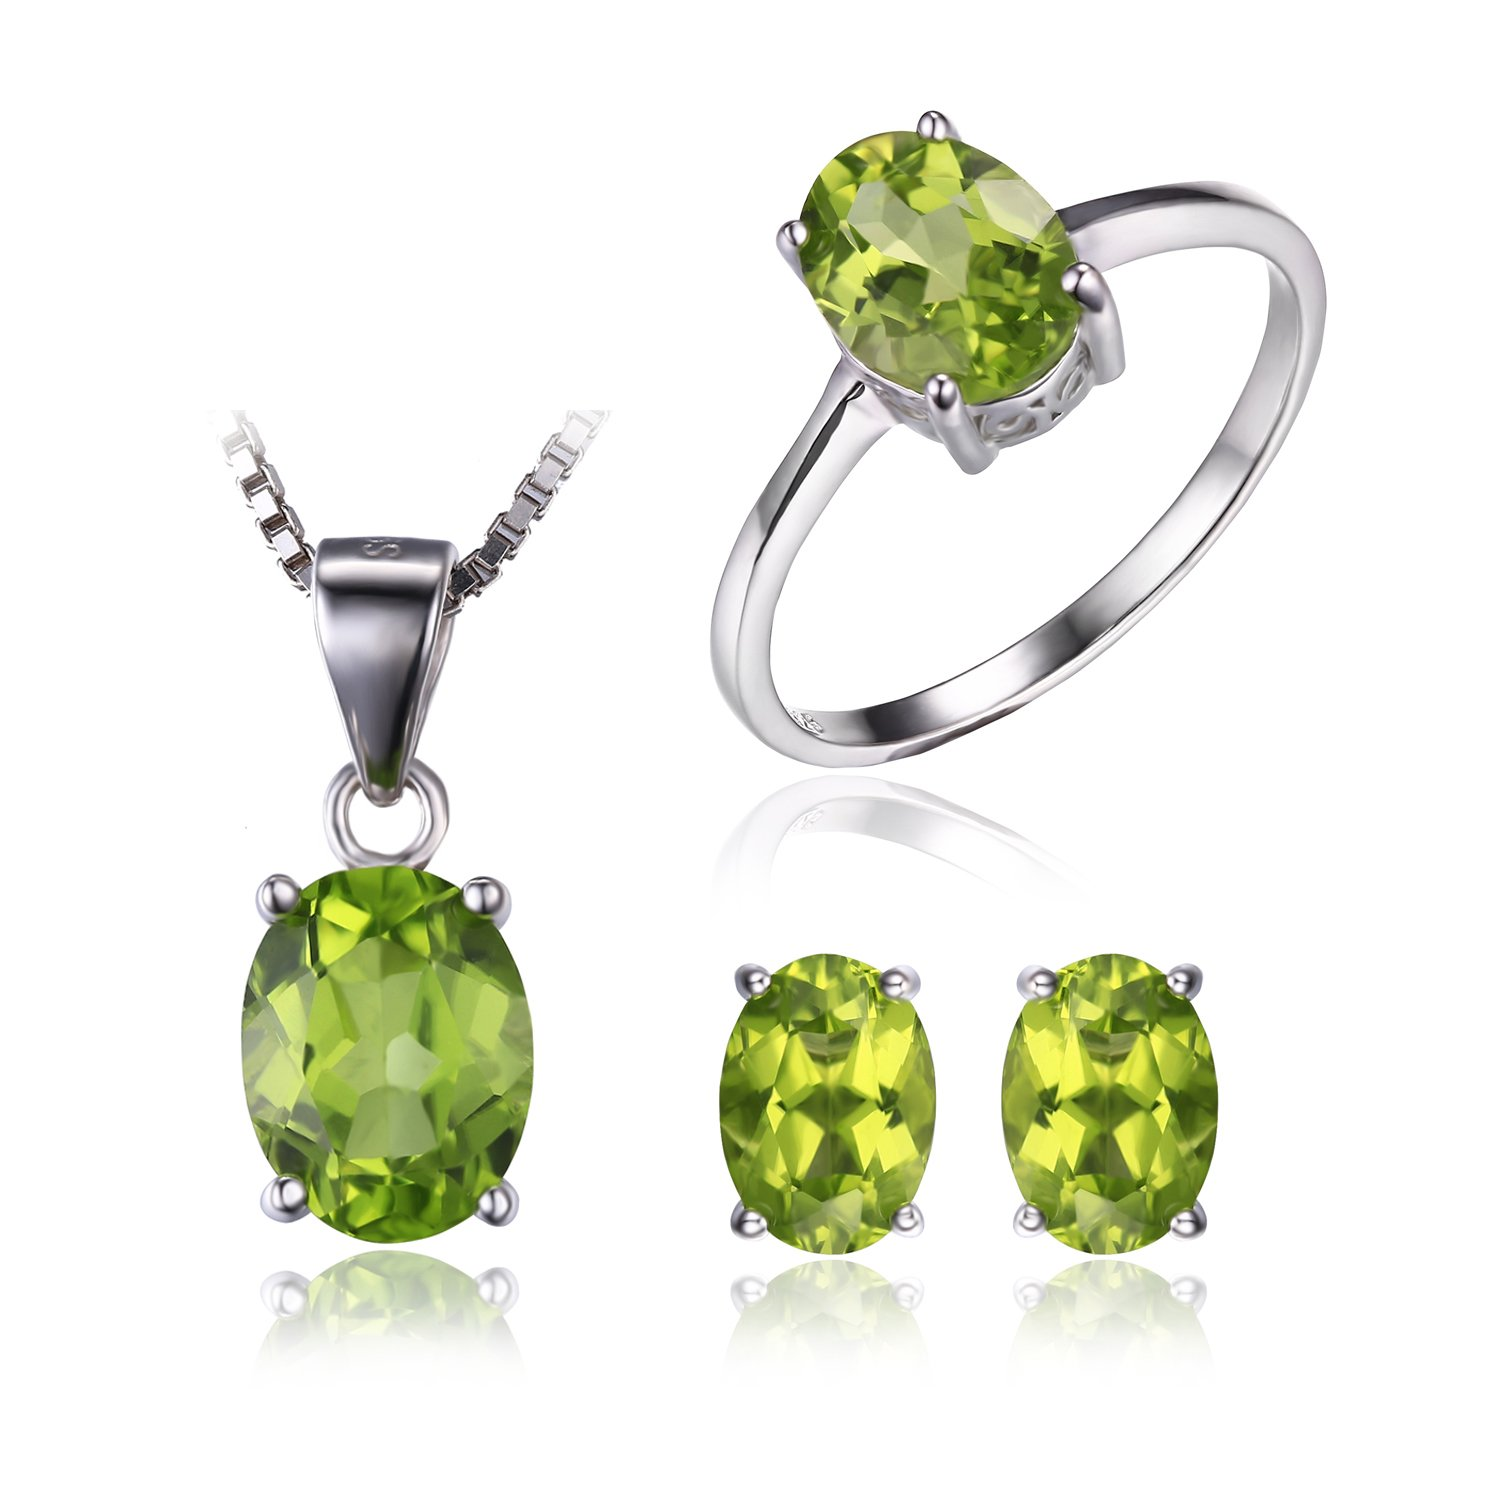 JewelryPalace Women's Oval 4.9ct Natural Green Peridot Birthstone Solitaire Jewelry Sets Ring Pendant Necklace Stud Earrings Genuine 925 Sterling Silver Size 7